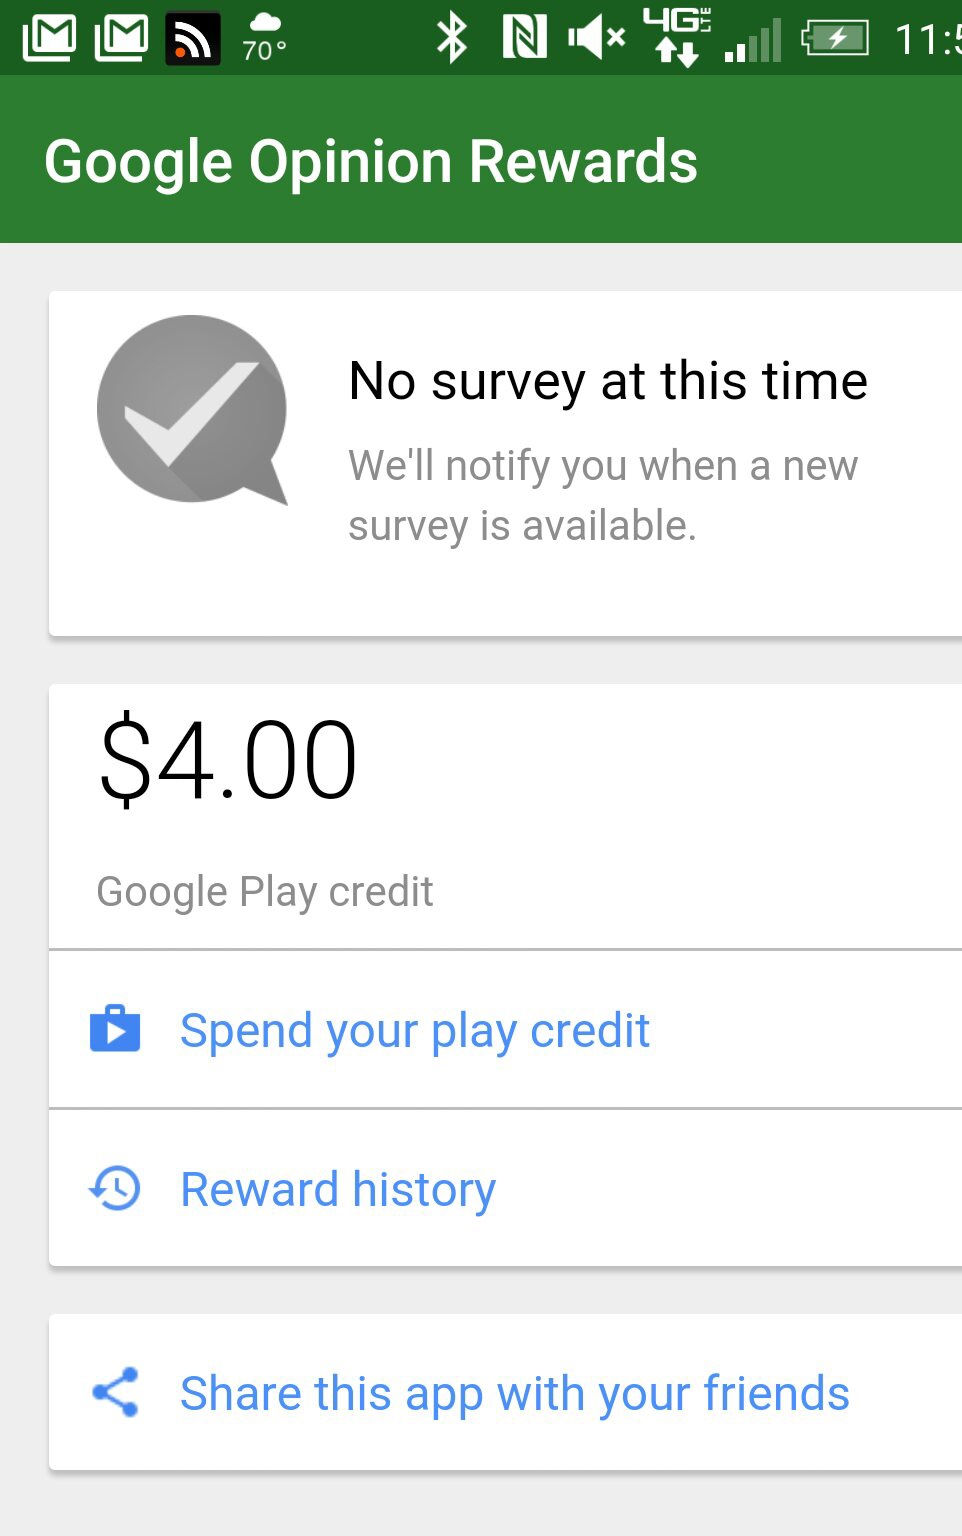 how often does google opinion rewards send surveys google opinion rewards lets you get paid for allowing 1471